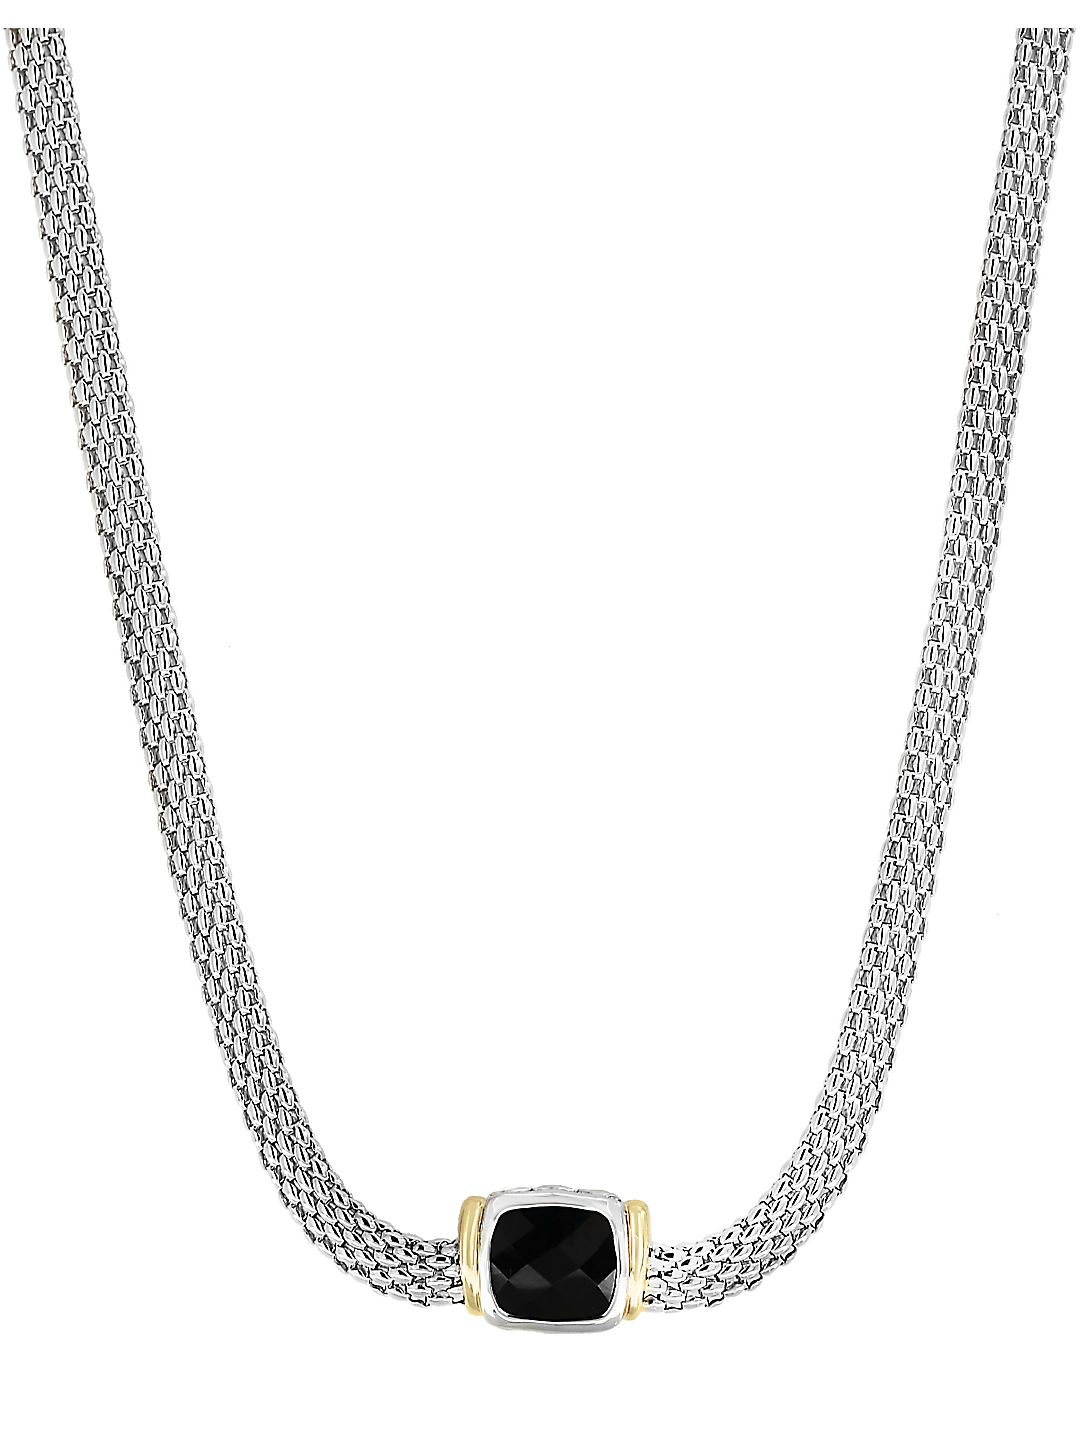 18K Yellow Gold and 925 Sterling Silver Necklace